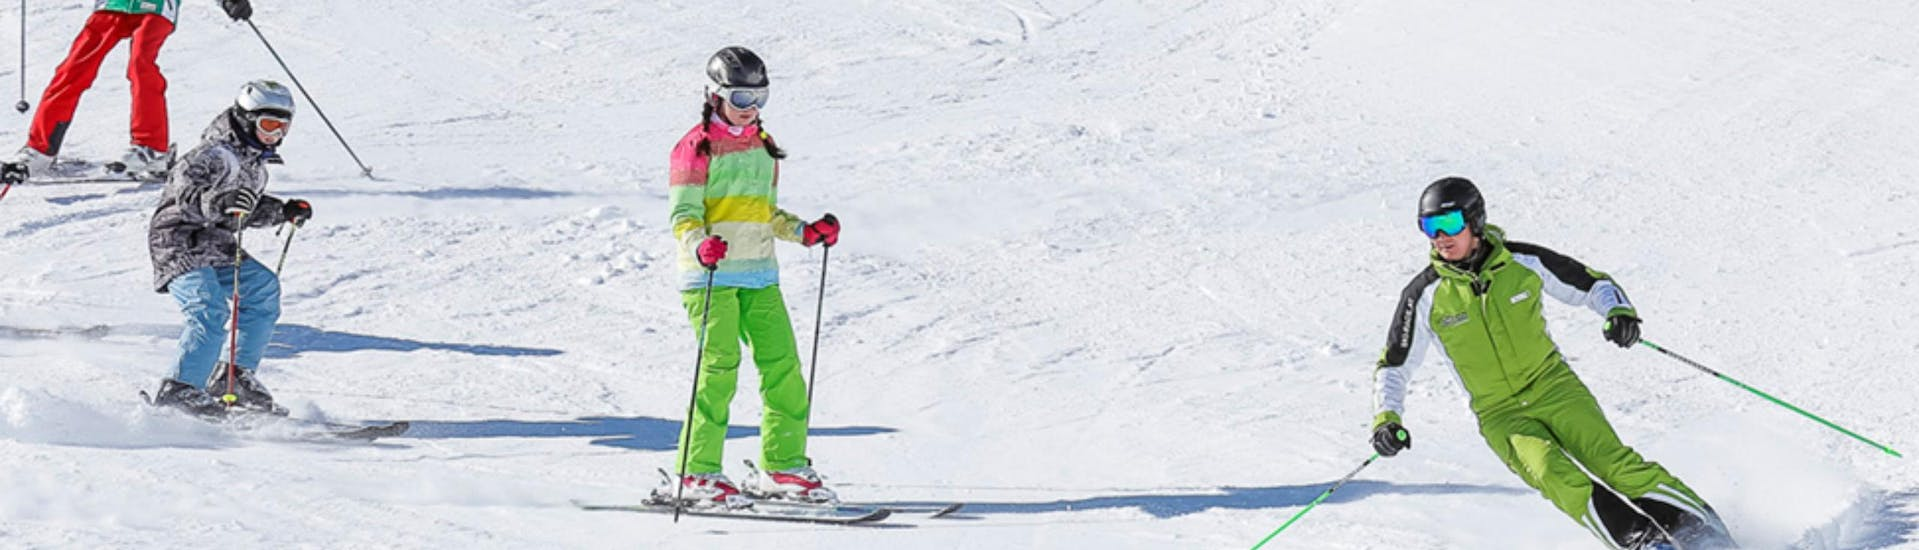 """A group of children is following its ski instructor from the ski school Ski- und Bikeschule Ötztal Sölden down the ski slope during their Kids Ski Lessons """"All-in-One"""" (11-14 years) - All Levels."""